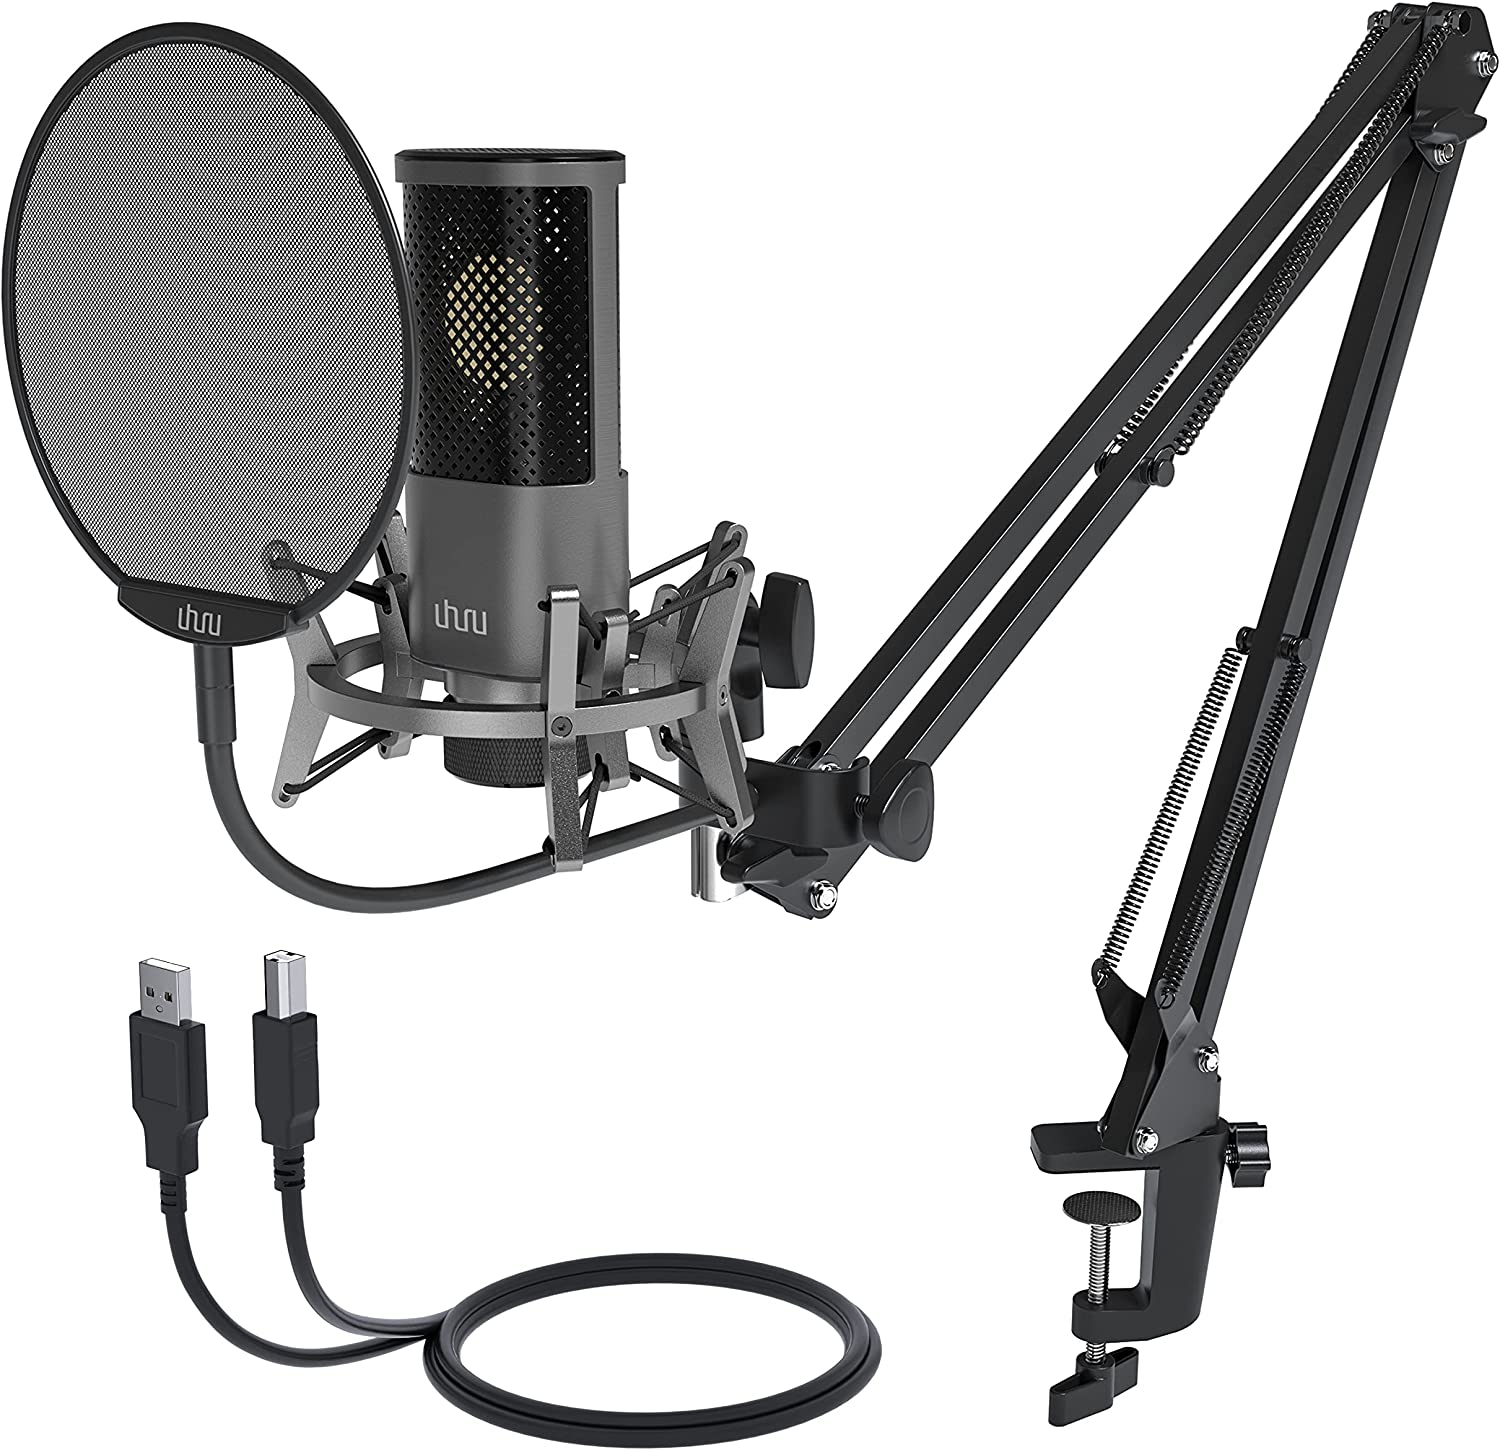 USB Podcast Microphone Max 58% OFF UHURU Streaming with Mic Finally popular brand Condenser S Kit